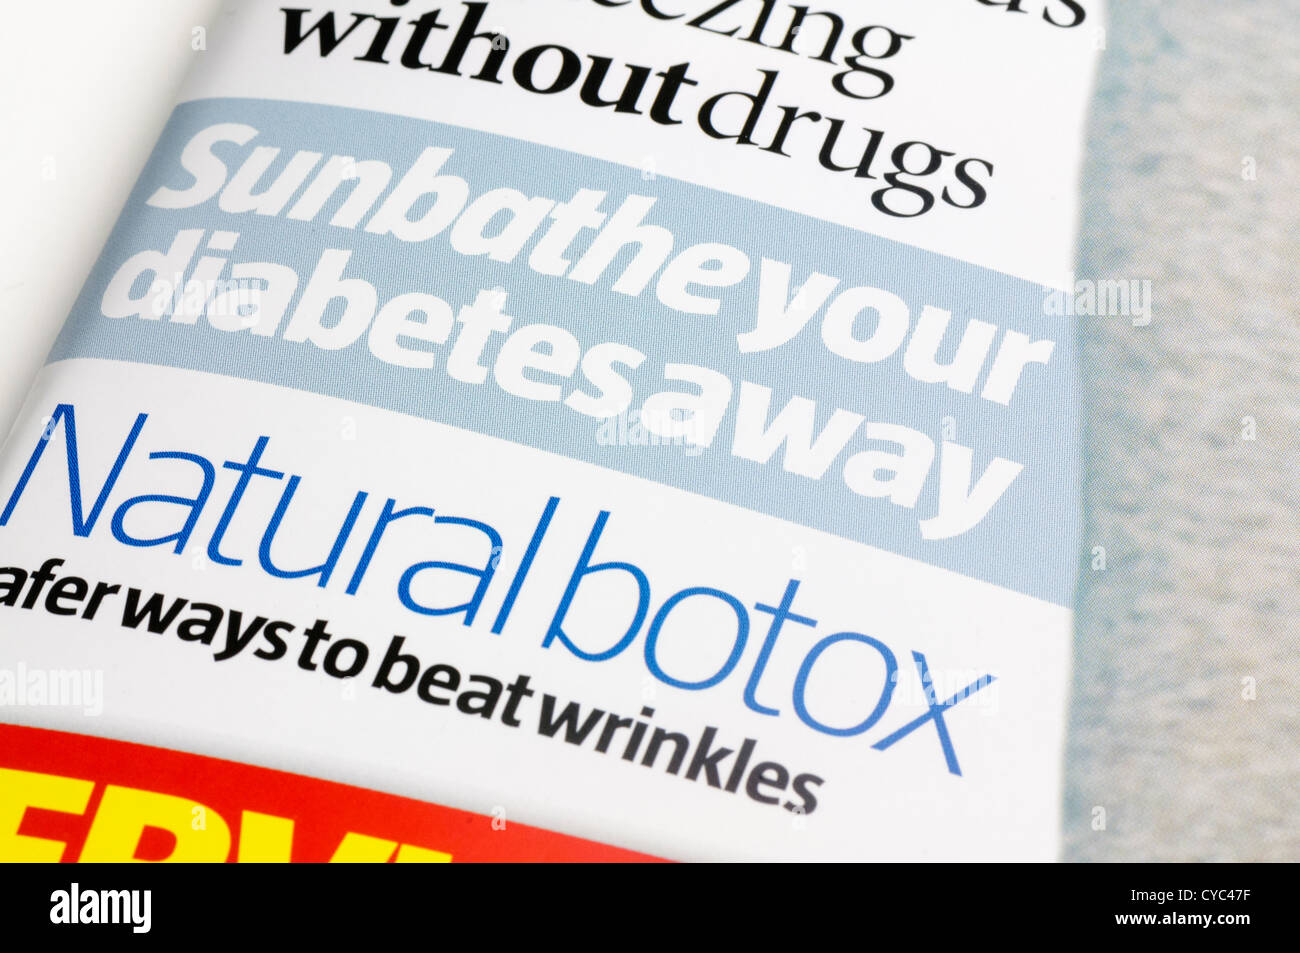 Cure diabetes by sunbathing, and natural botox in 'What Doctors Wont Tell You', a controversial UK magazine - Stock Image